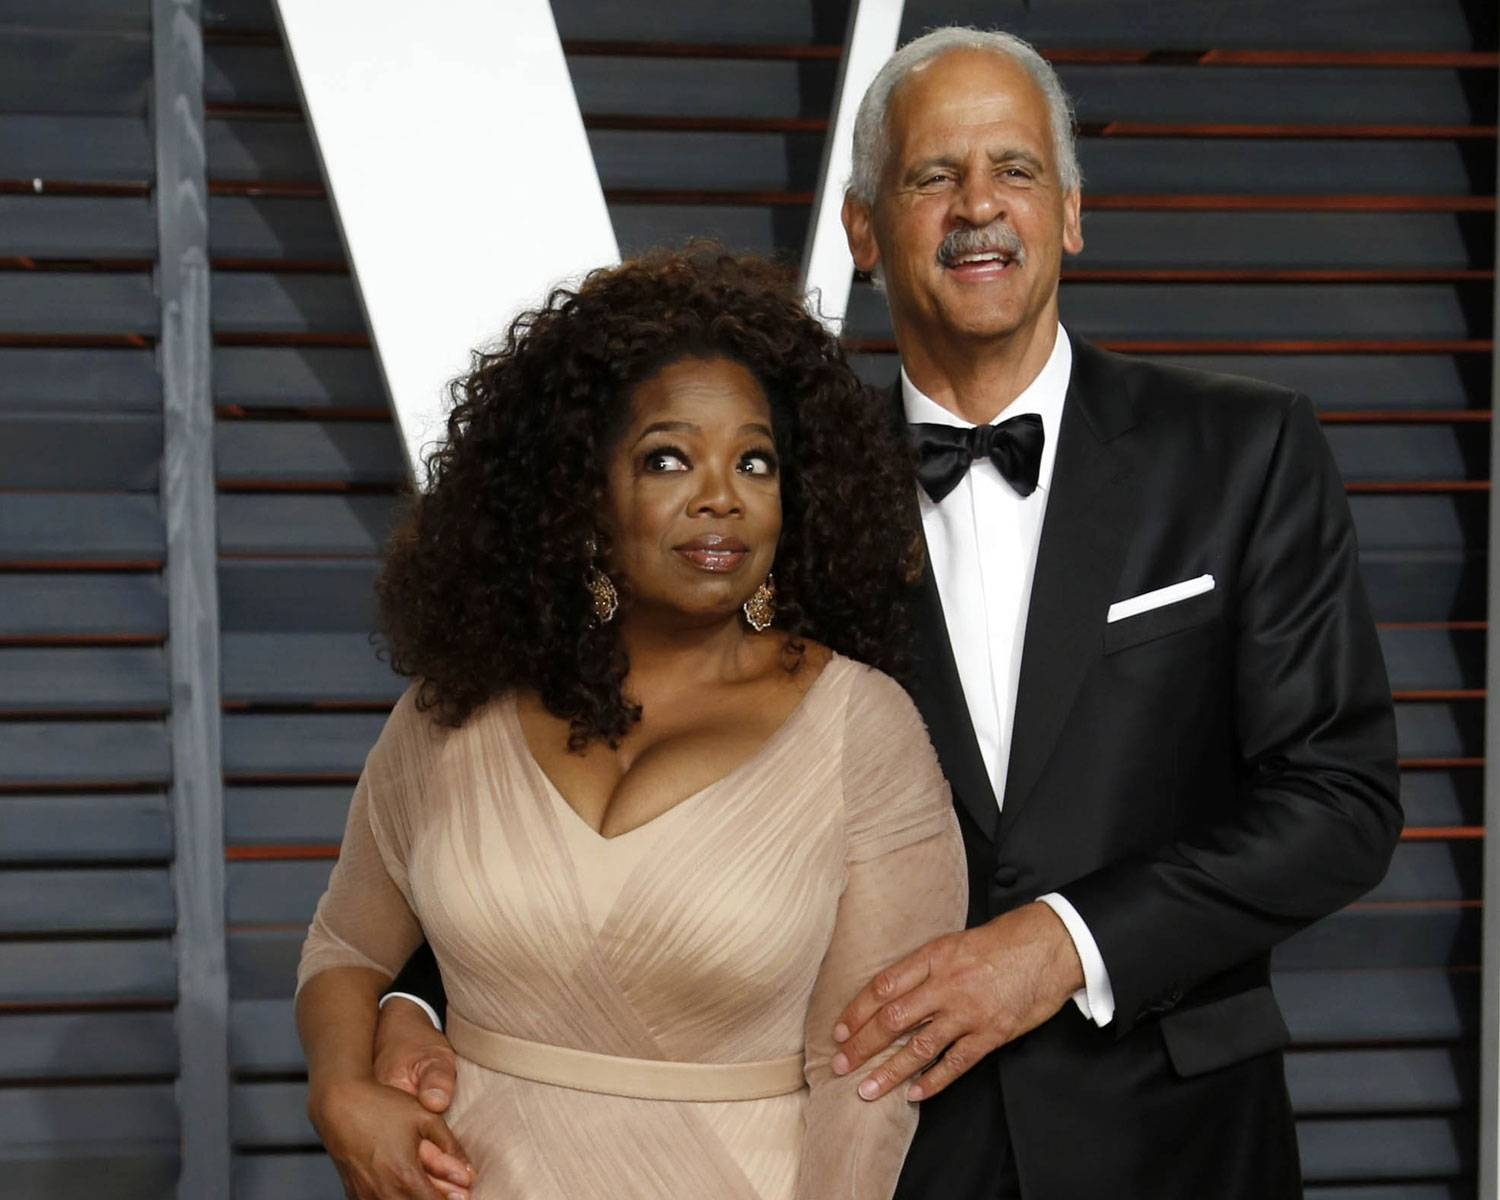 Oprah On Why She Never Married Longtime Partner Stedman Graham Intended For Oprah Wedding Rings (Gallery 8 of 15)